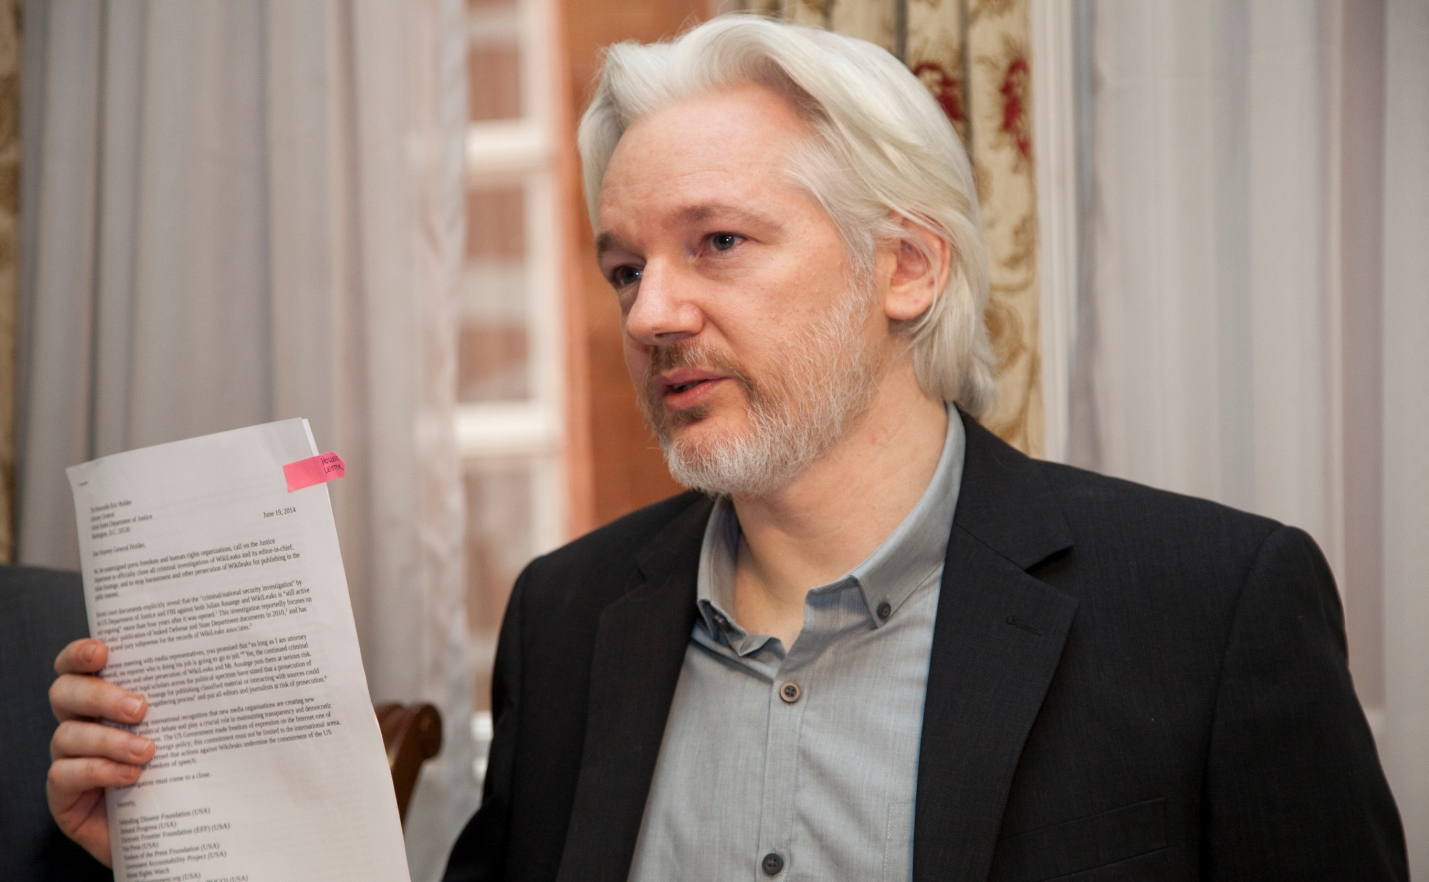 Image: How is what Julian Assange has done with Wikileaks any different than U.S. newspaper coverage of Watergate or the Pentagon Papers?